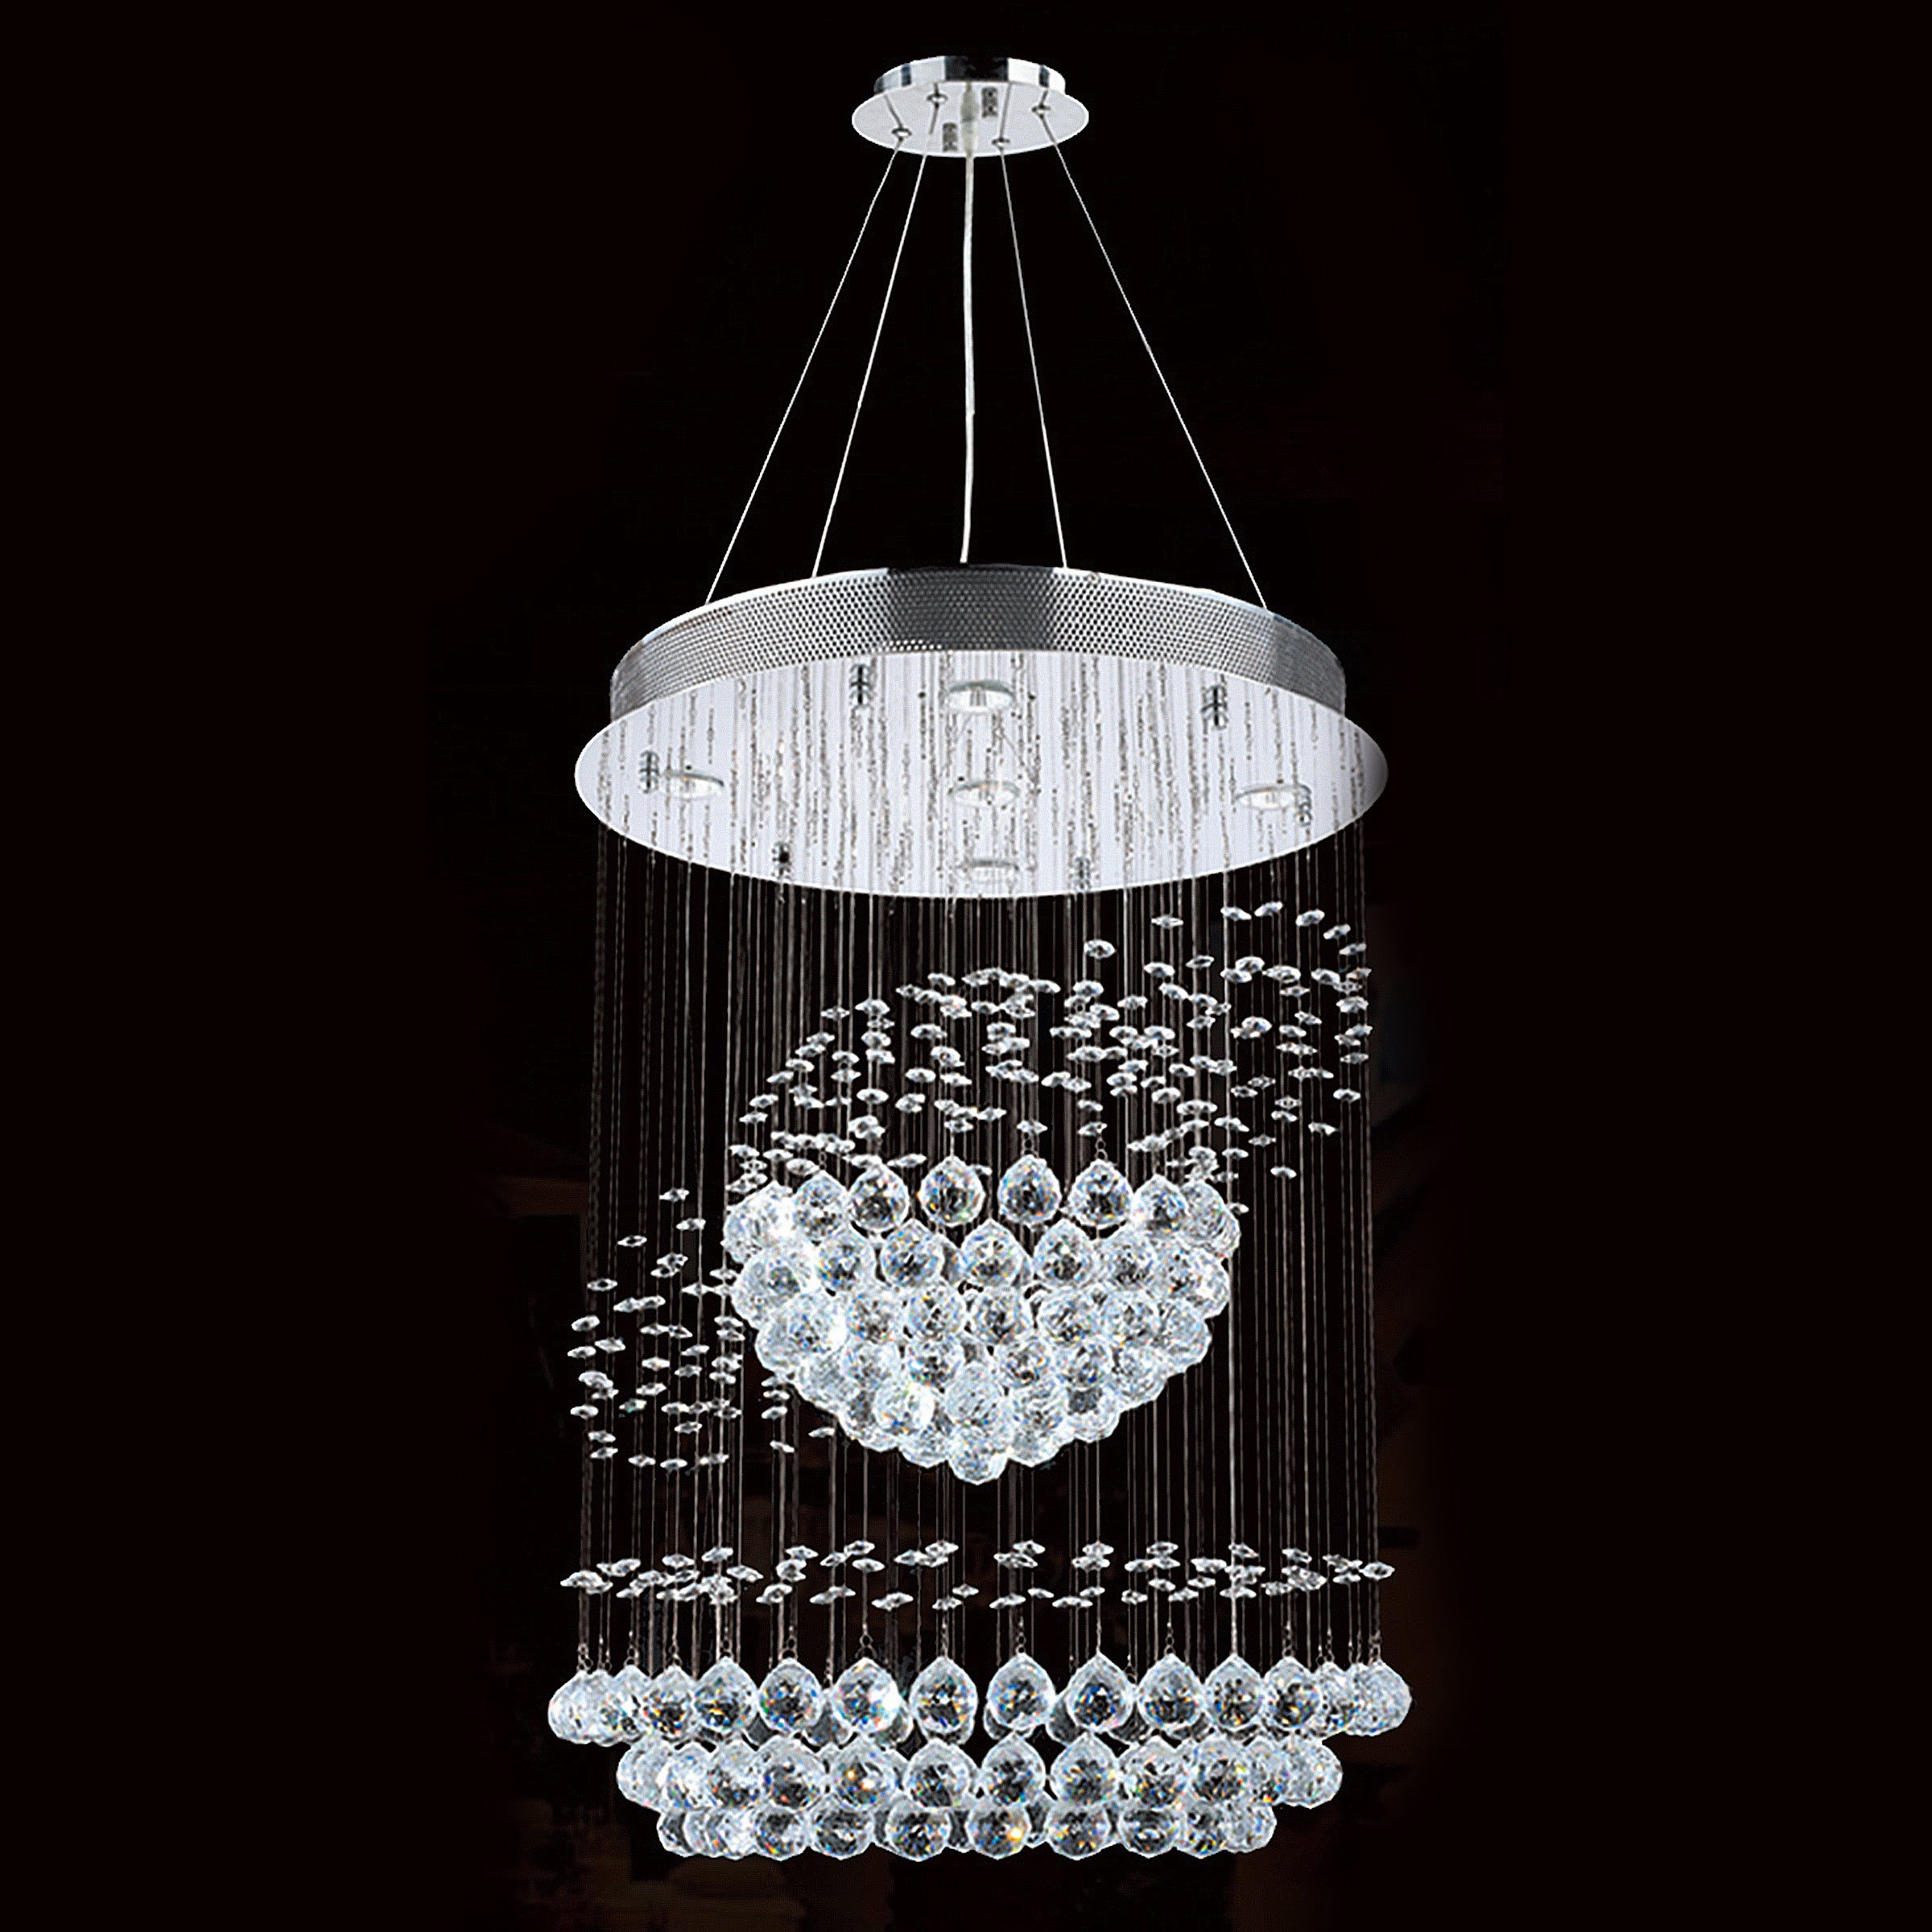 Modern Contemporary 5 Light Chrome Finish Full Lead Crystal Galaxy